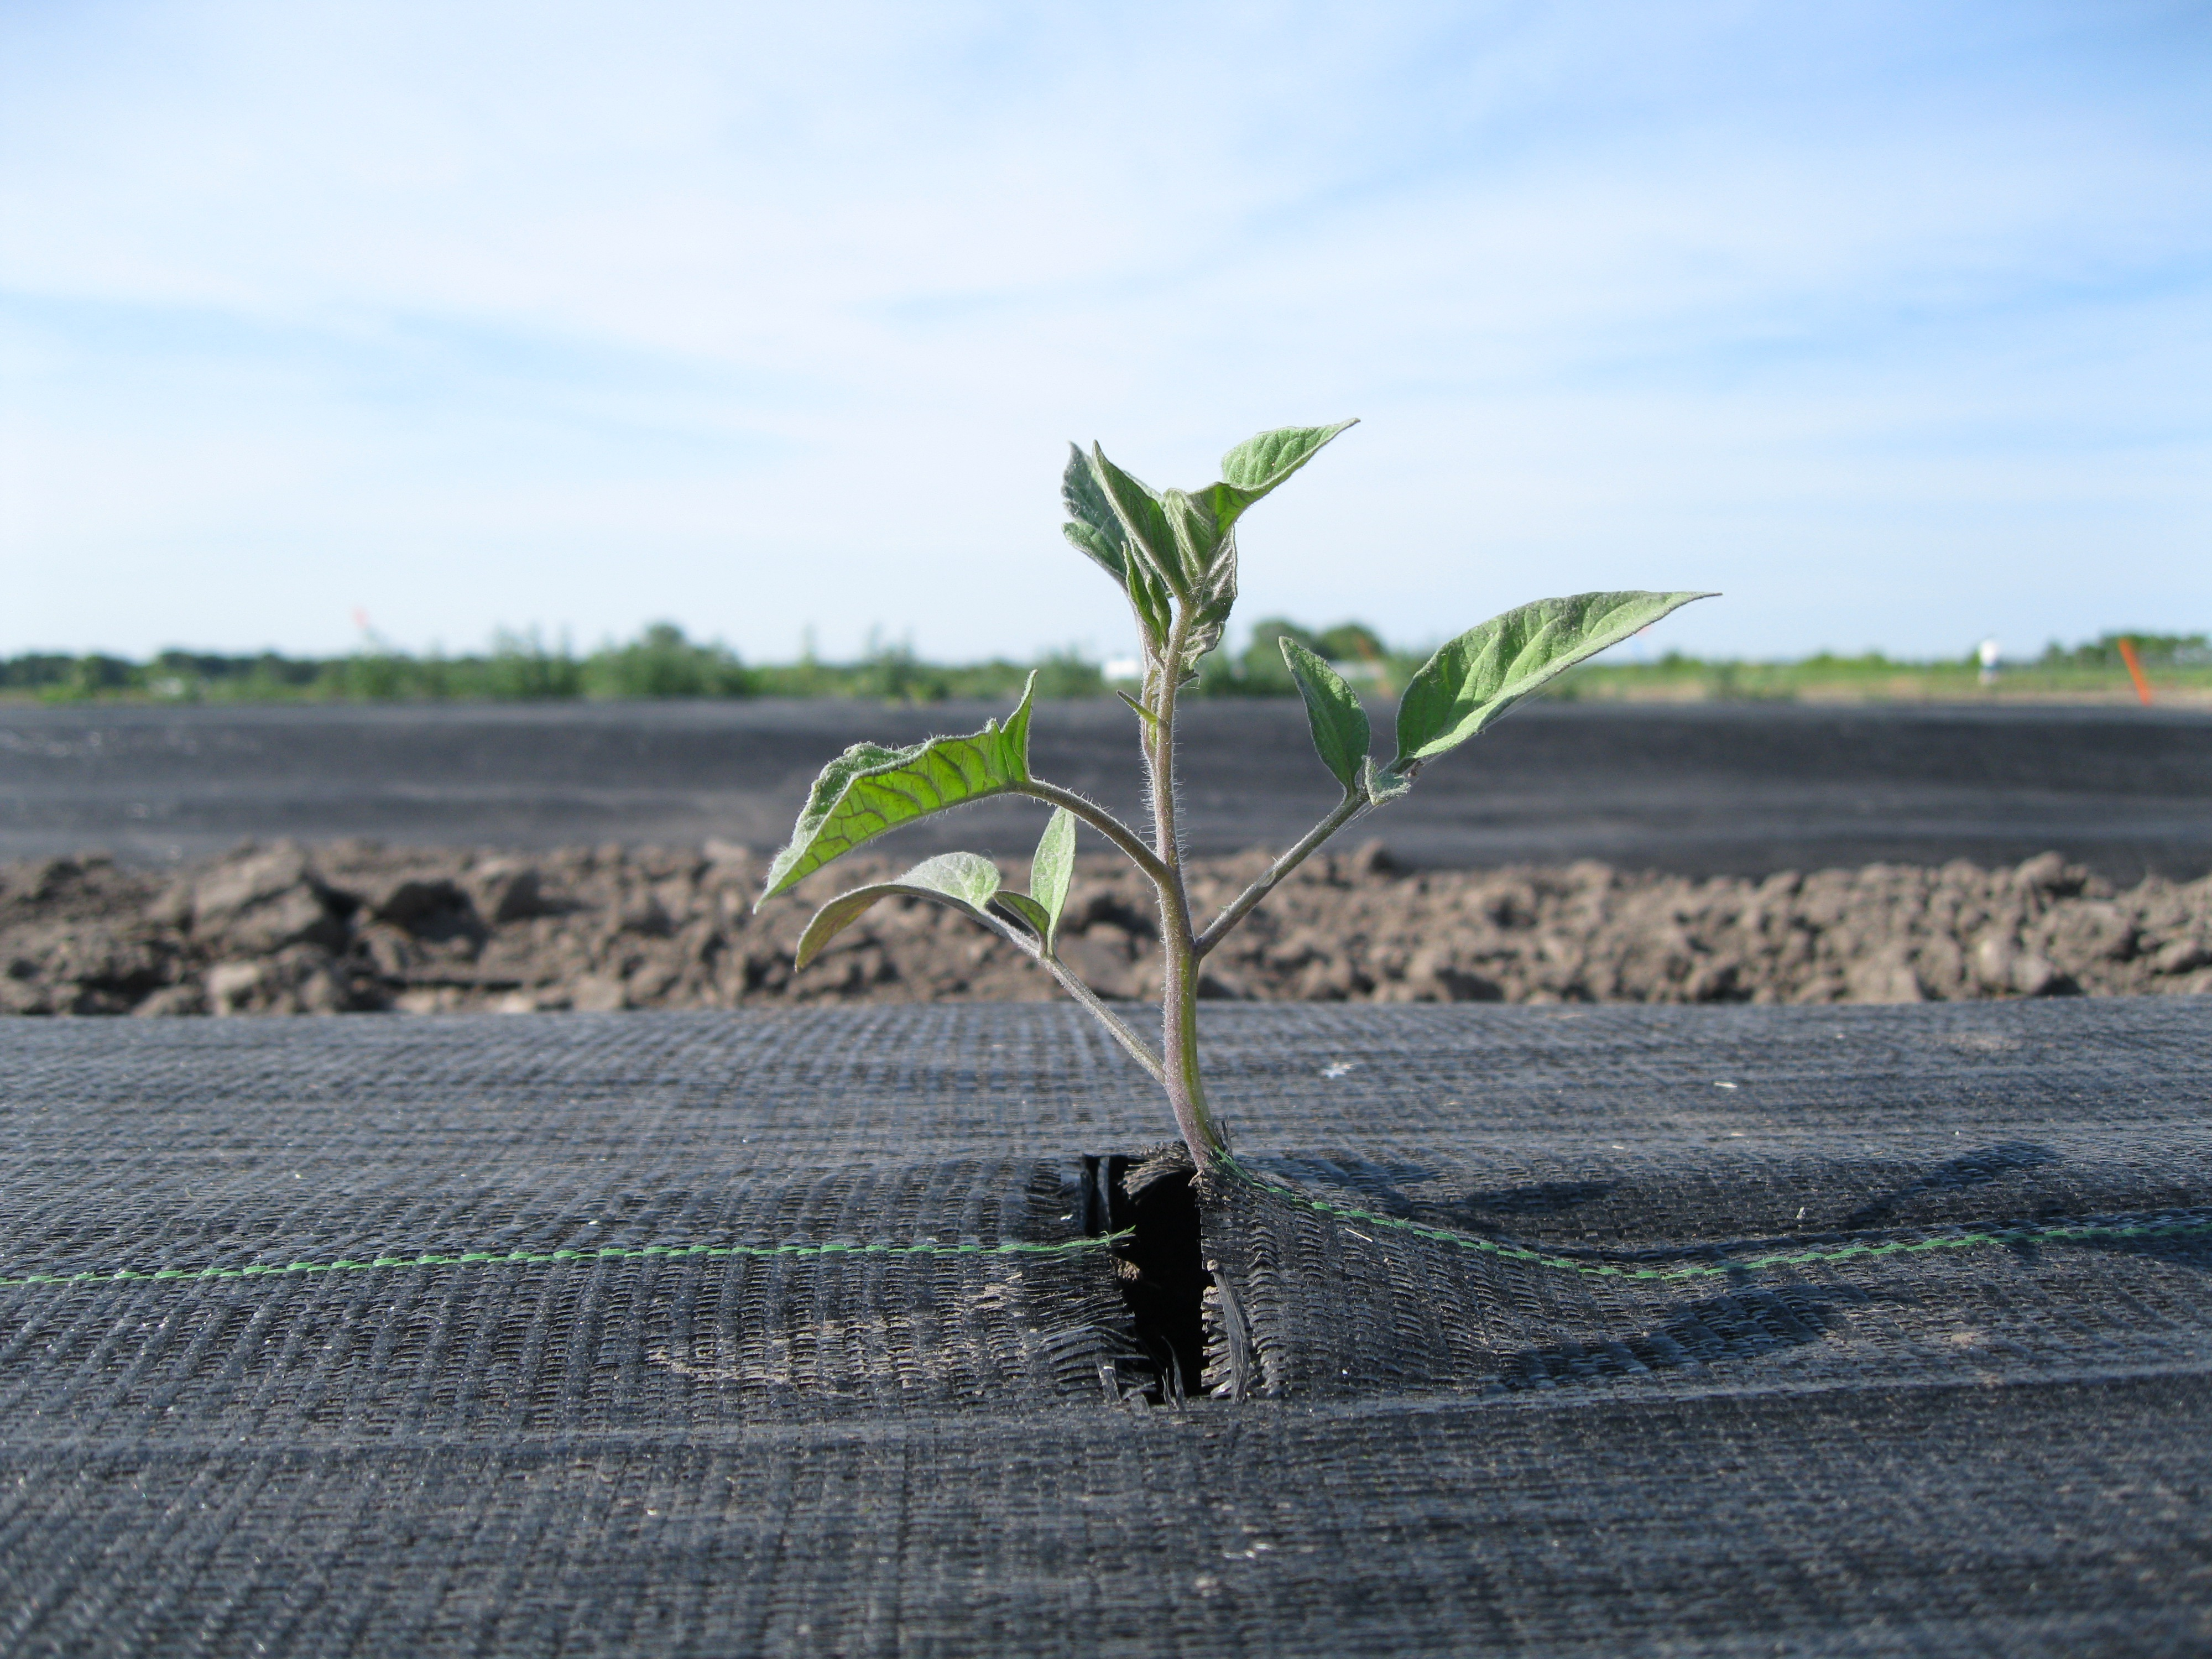 Clariant's solutions awarded with the OK compost INDUSTRIAL and OK biodegradable SOIL certificatio...